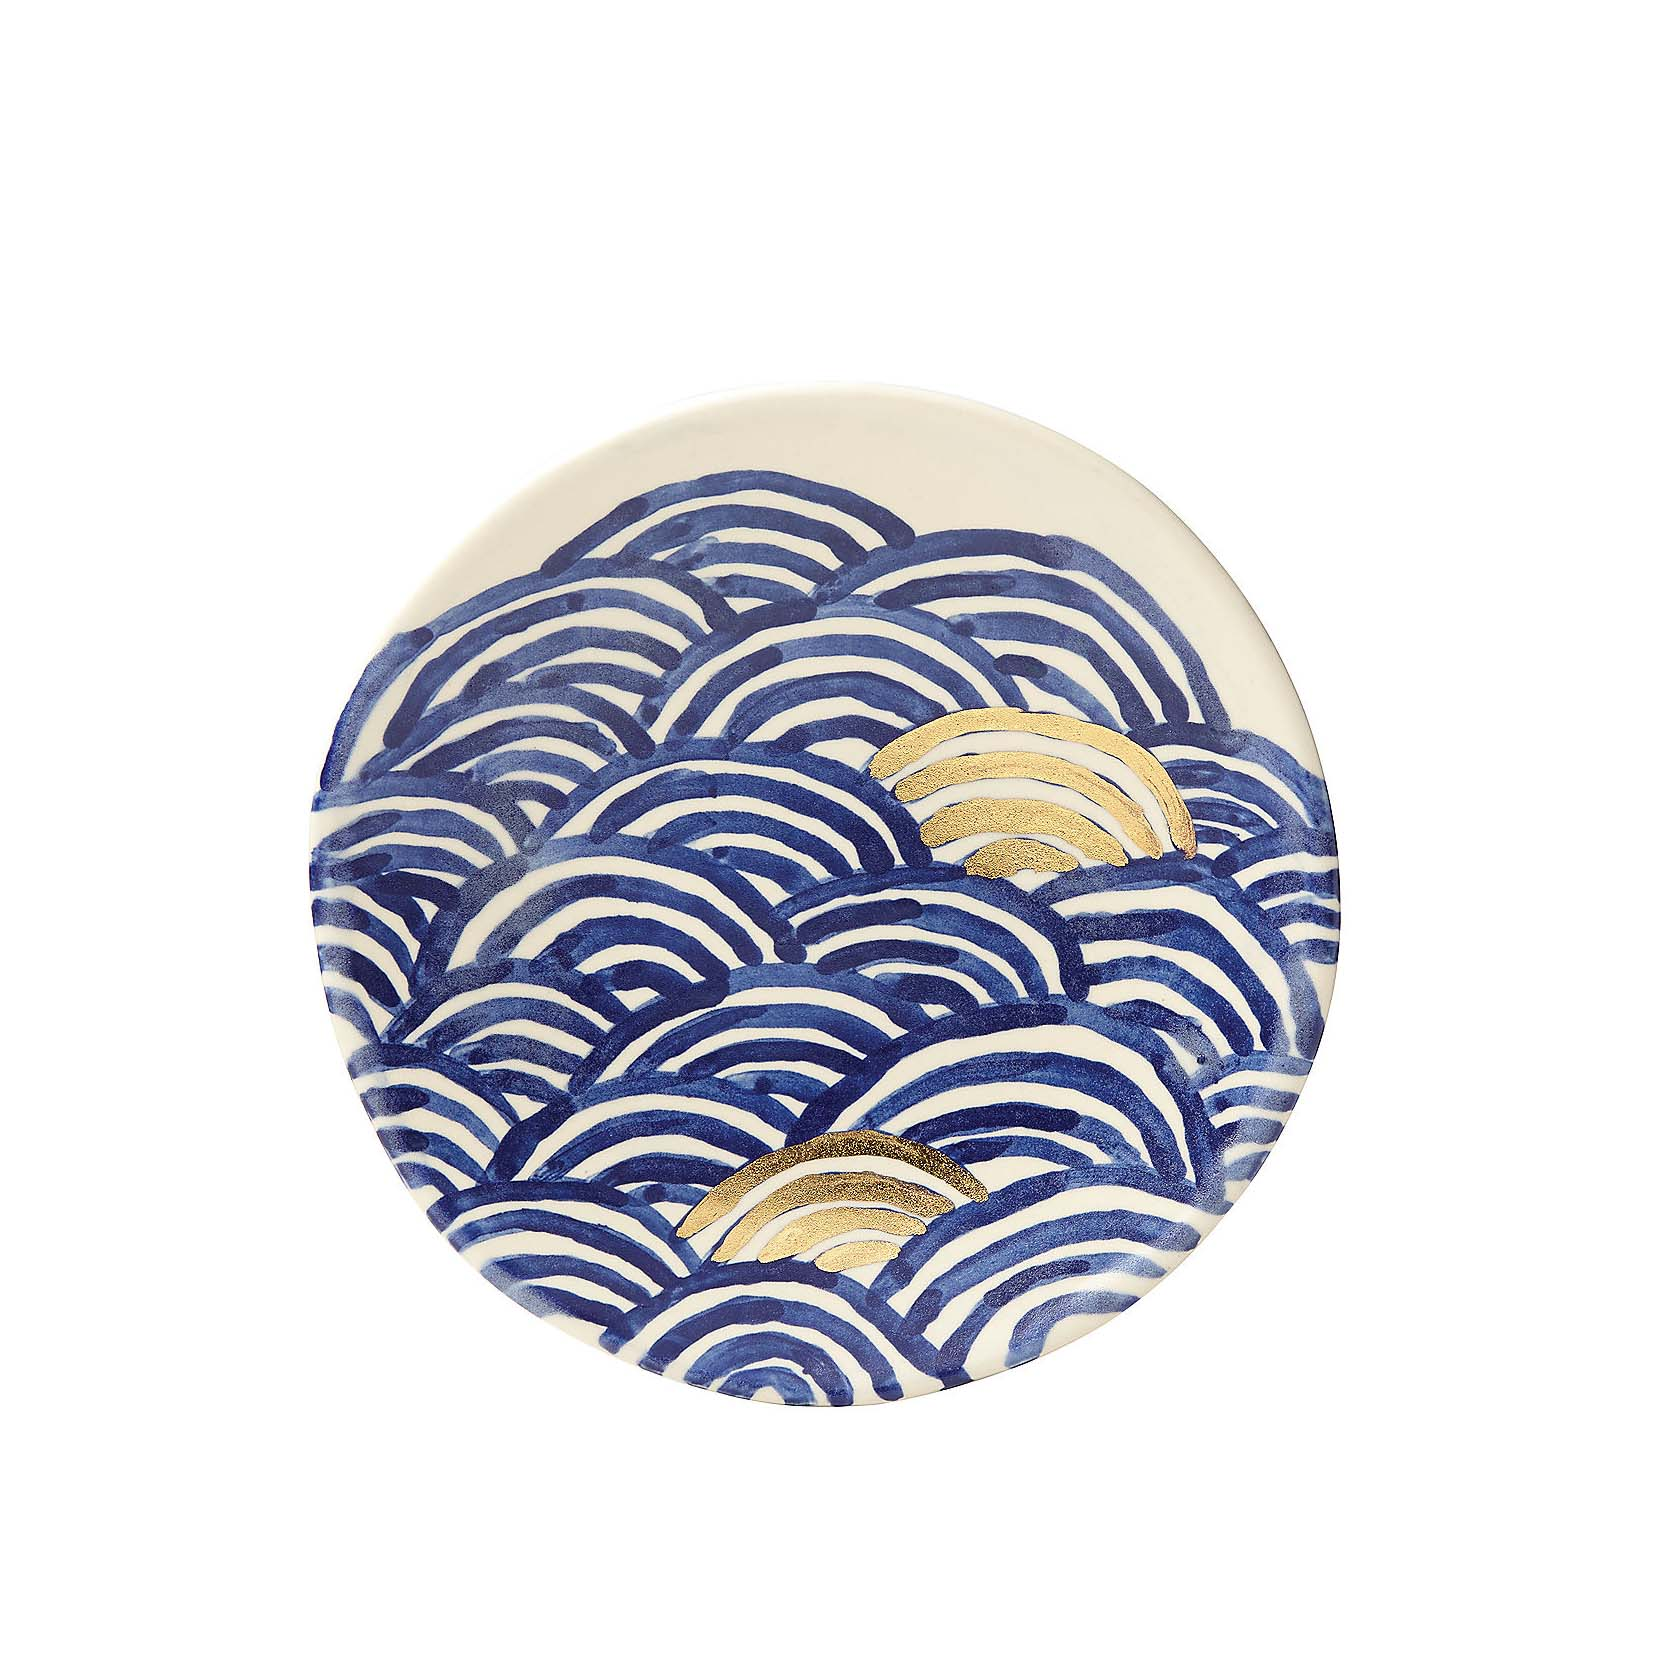 blue and white circluar design plate